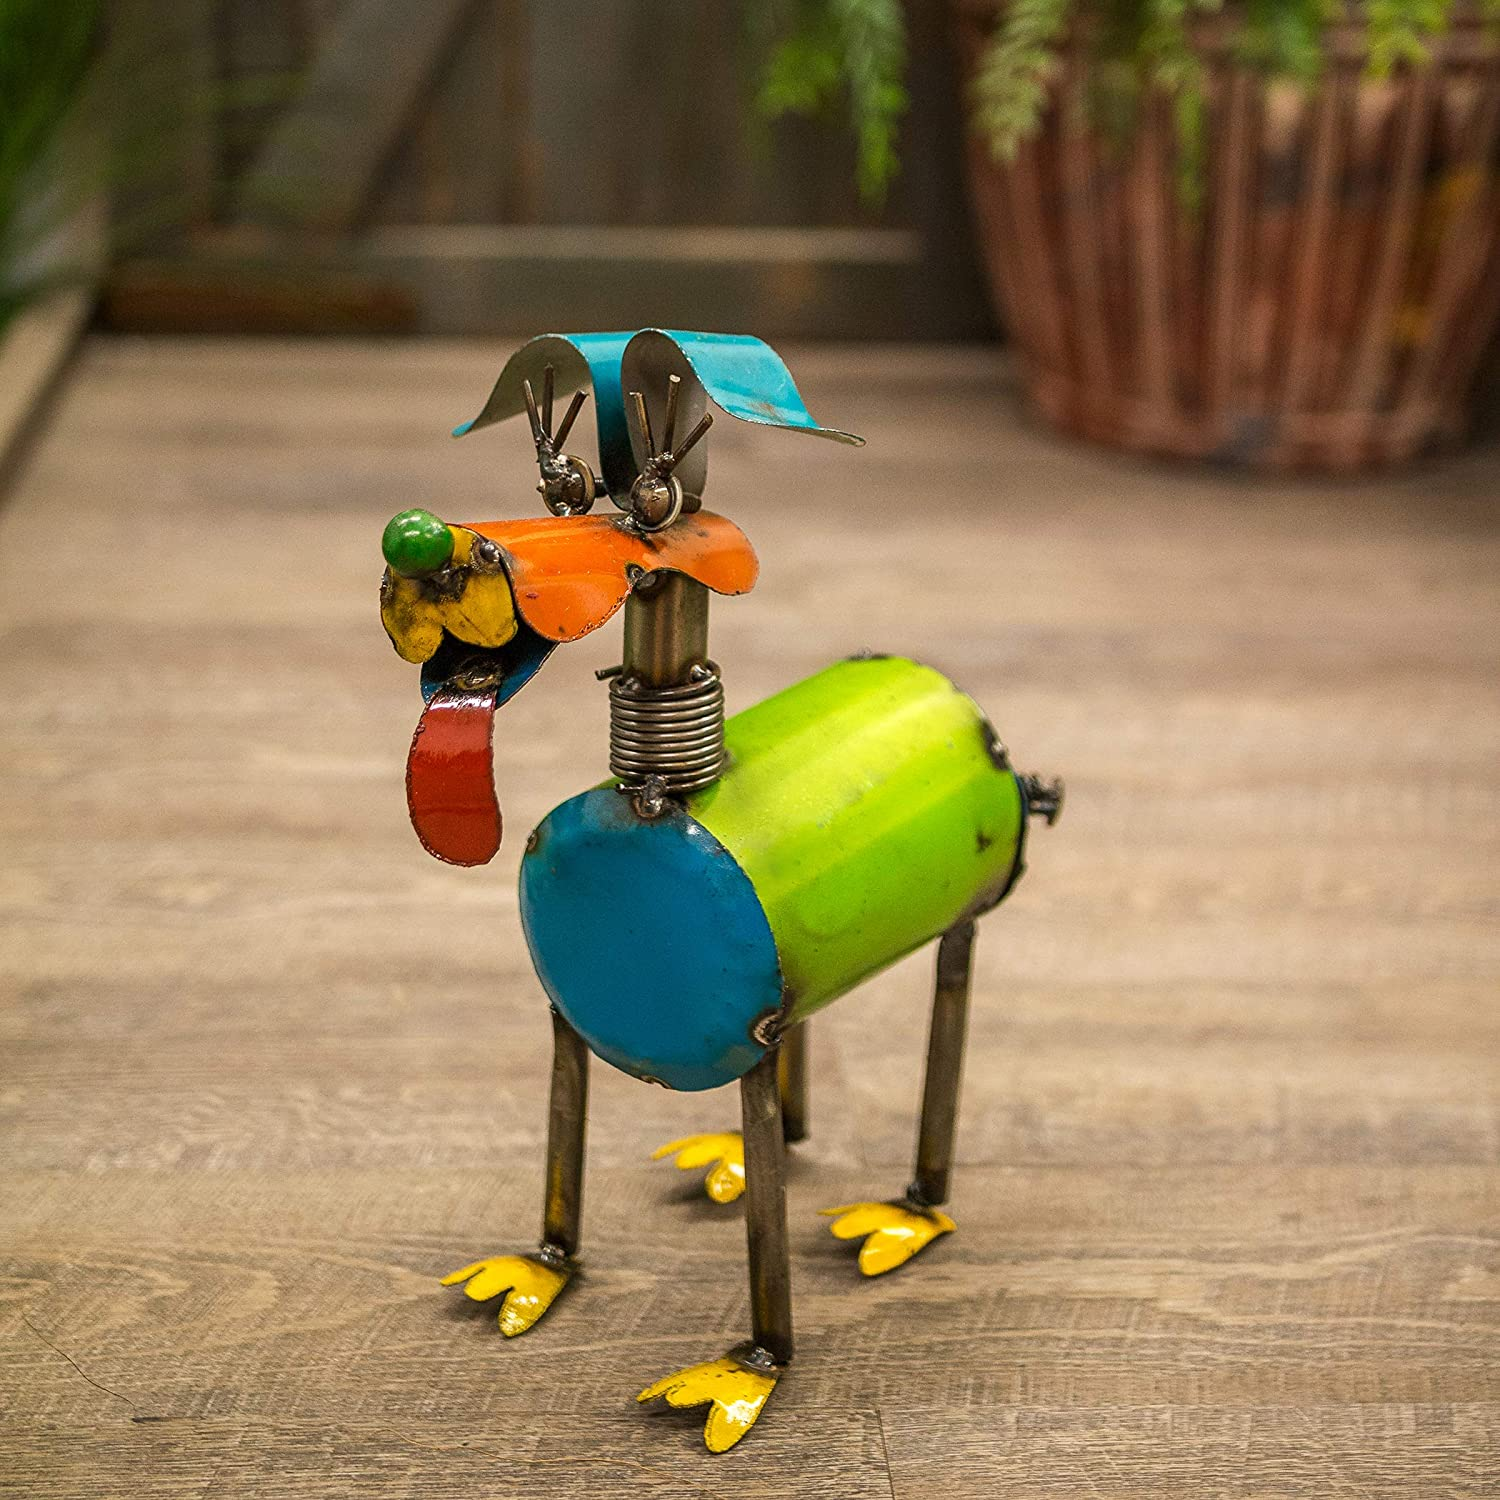 Rustic Arrow Small Fido Spring Neck Dog for Decor Multicolor 12 by 6 by 13-Inch